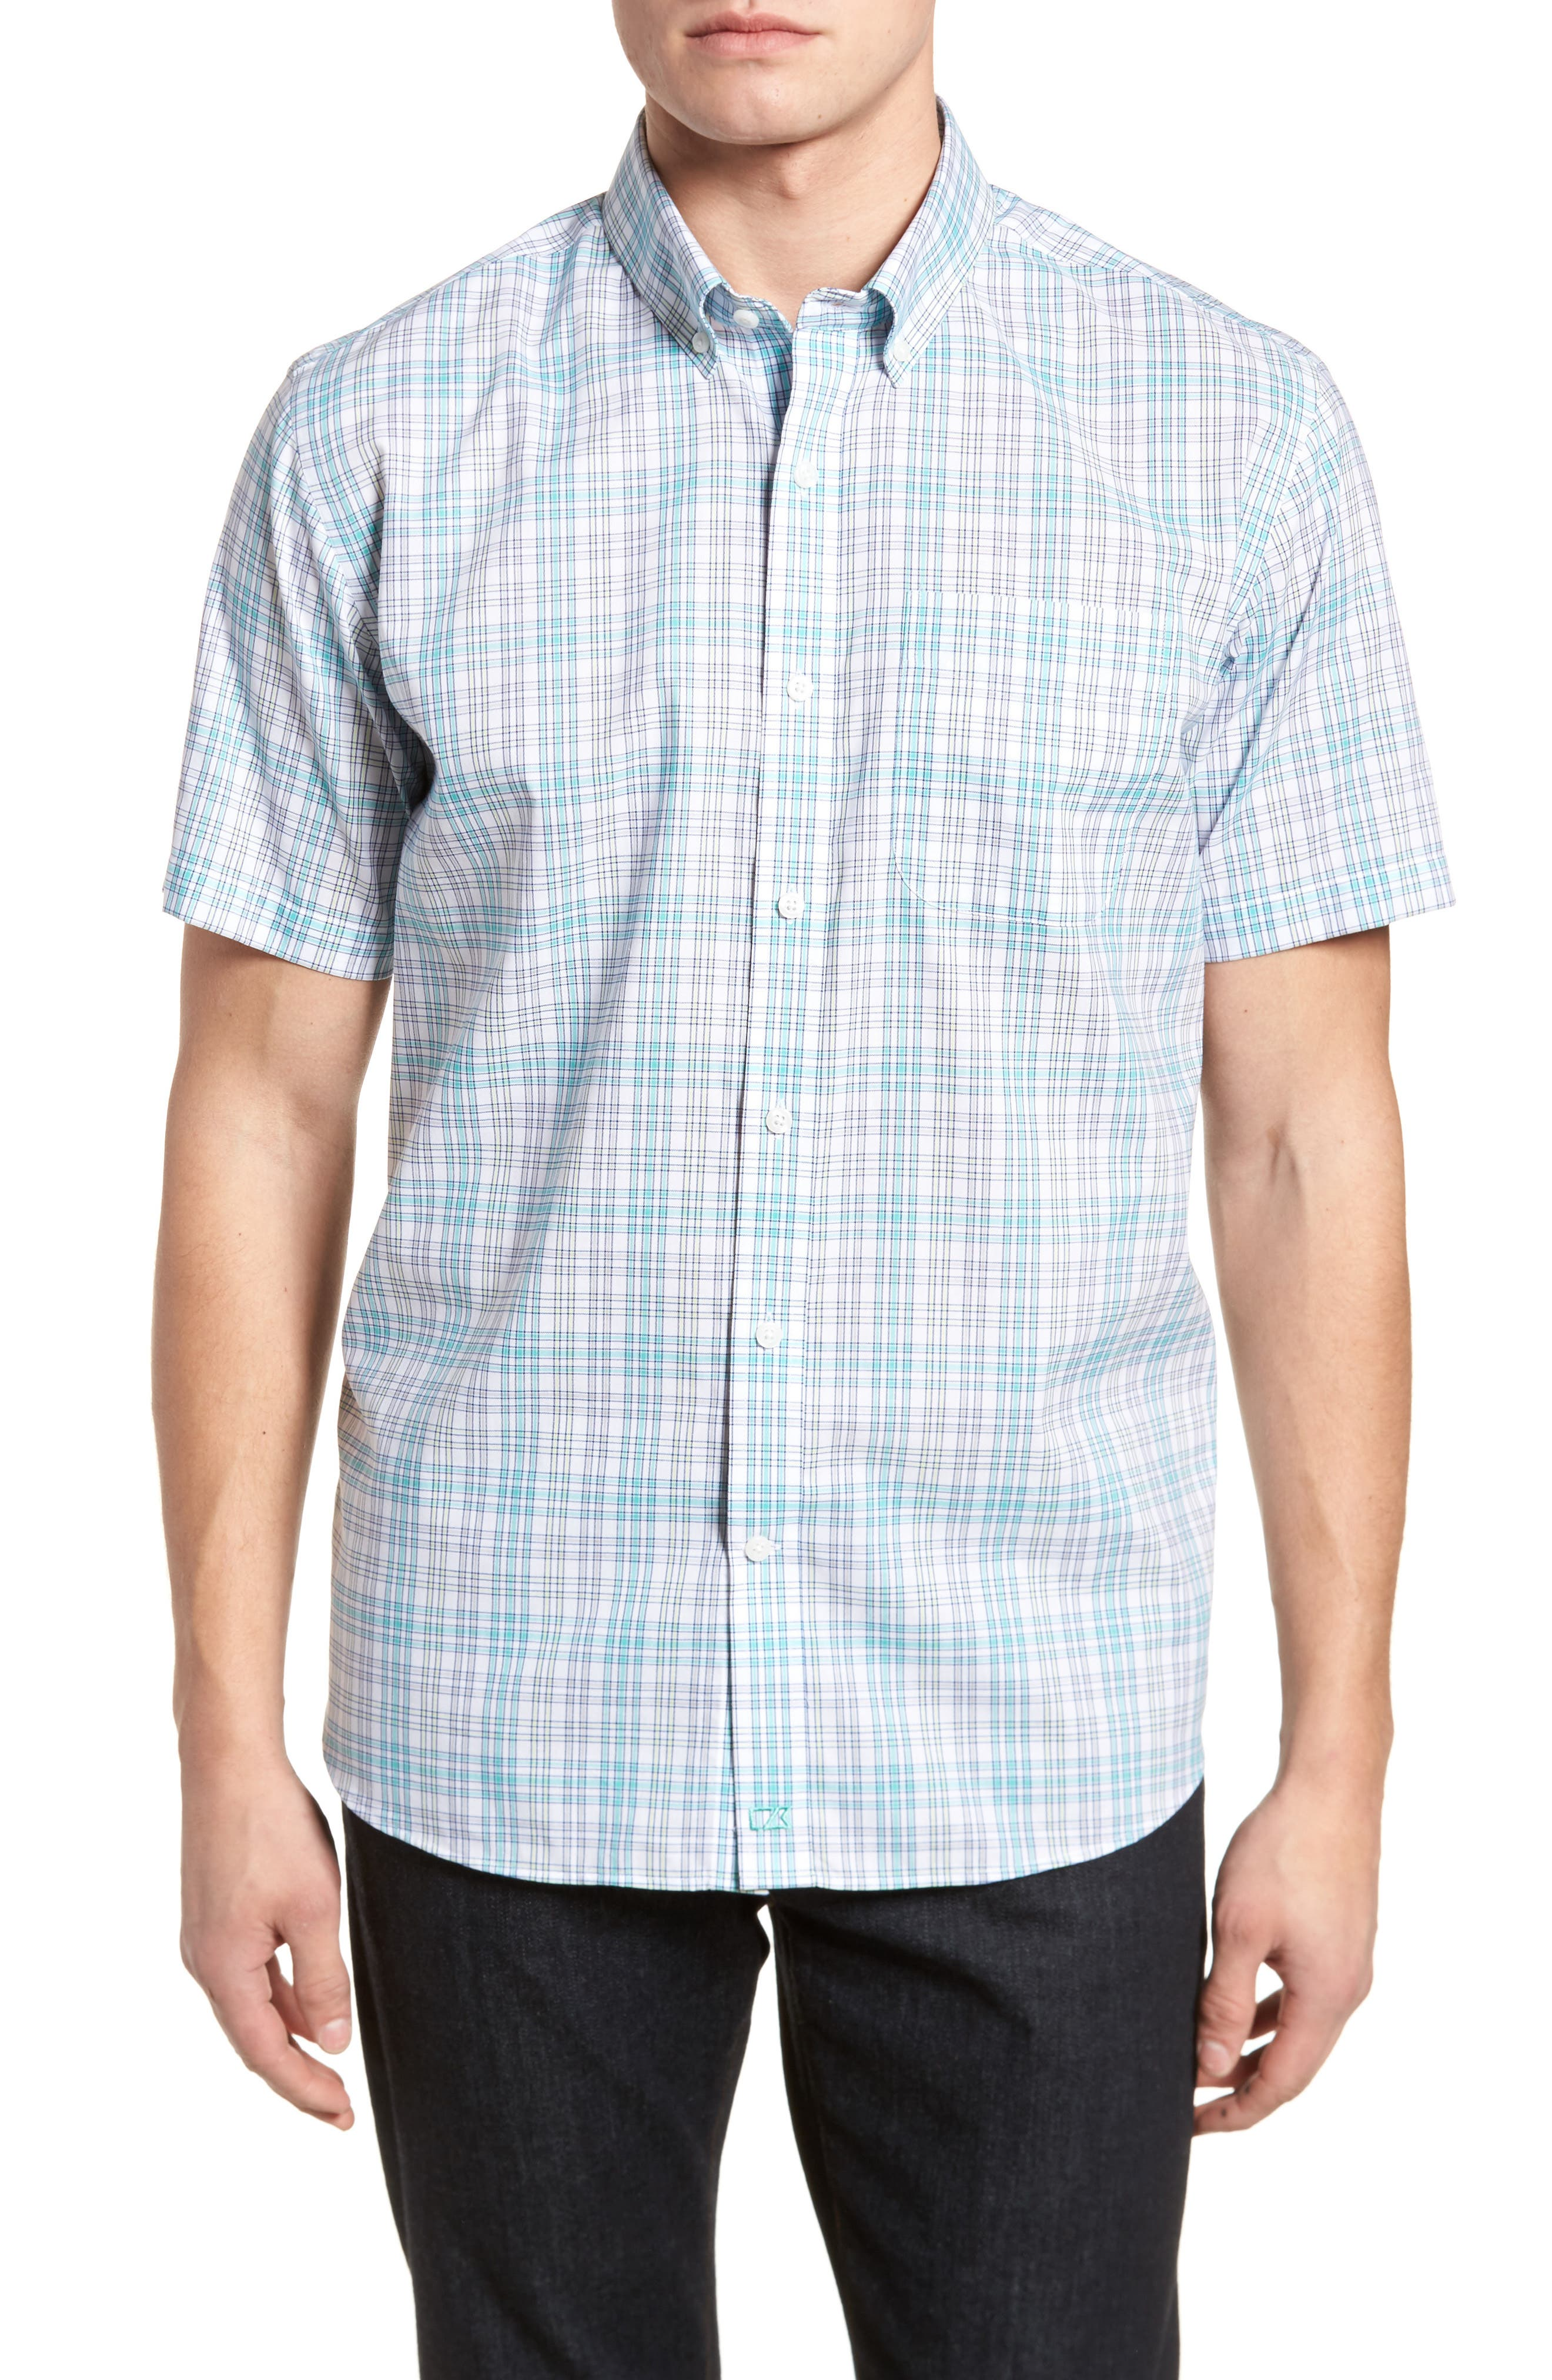 Isaac Plaid Easy Care Woven Shirt,                             Main thumbnail 1, color,                             328